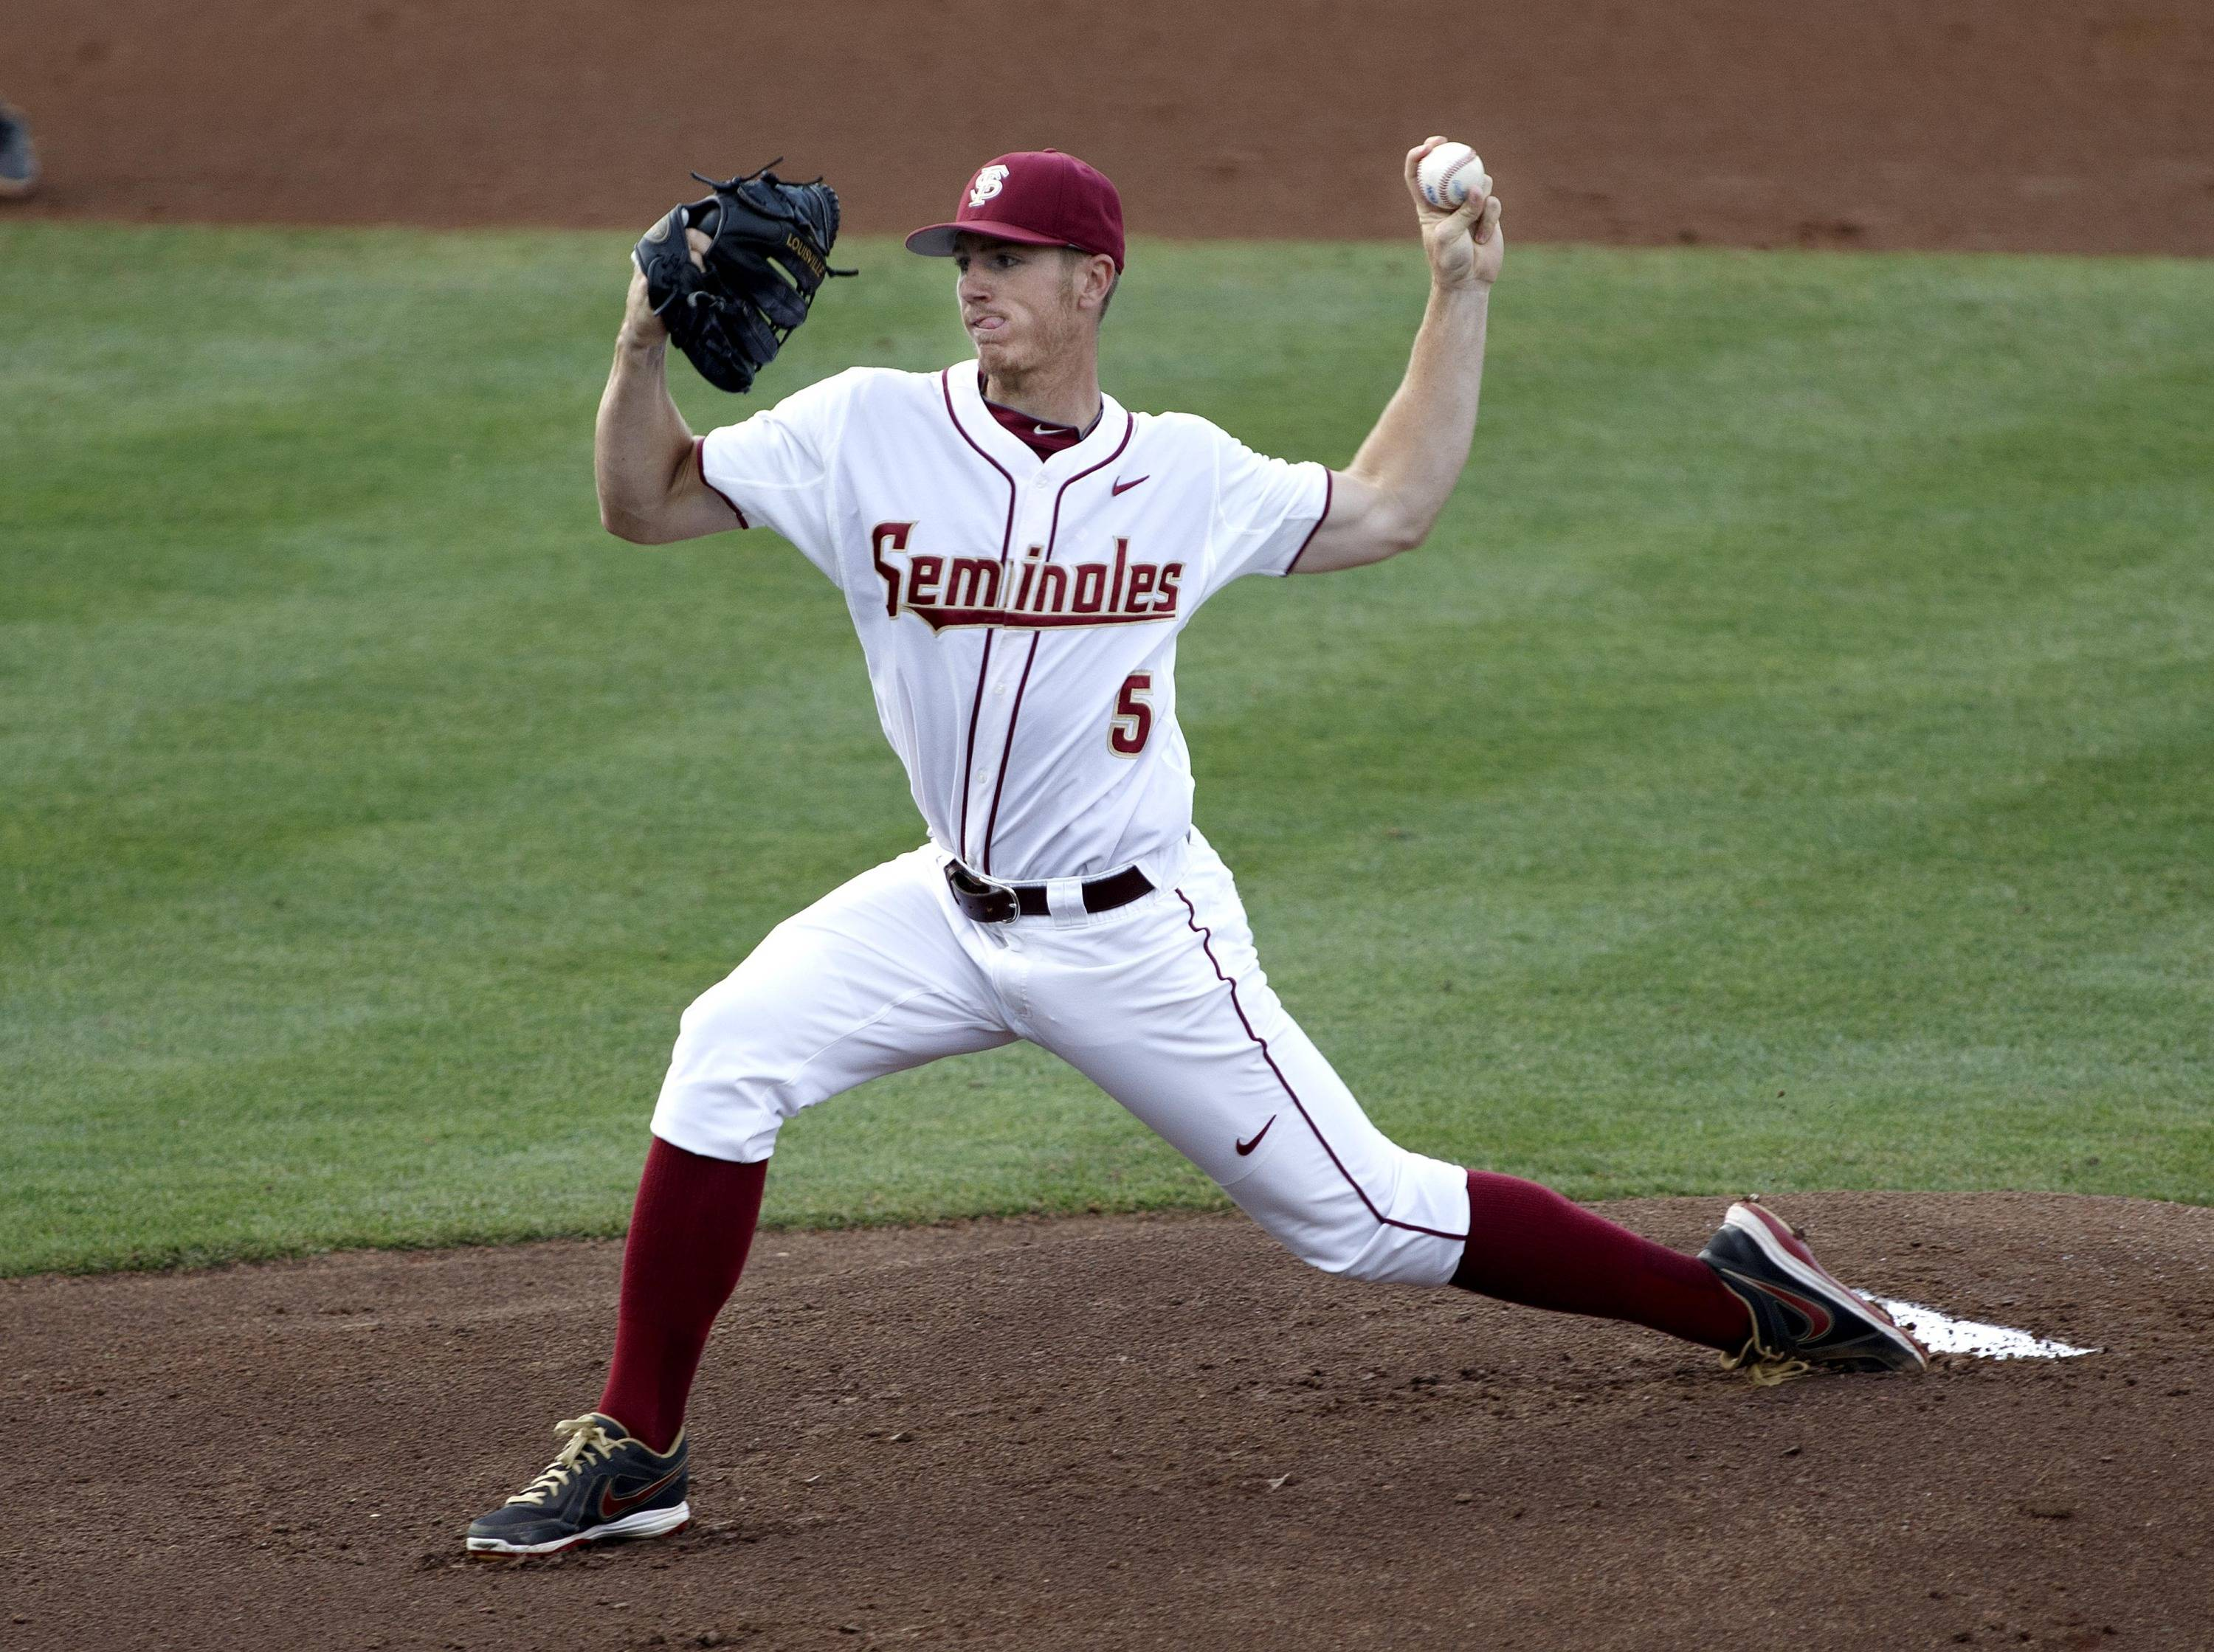 Florida State starting pitcher Billy Strode